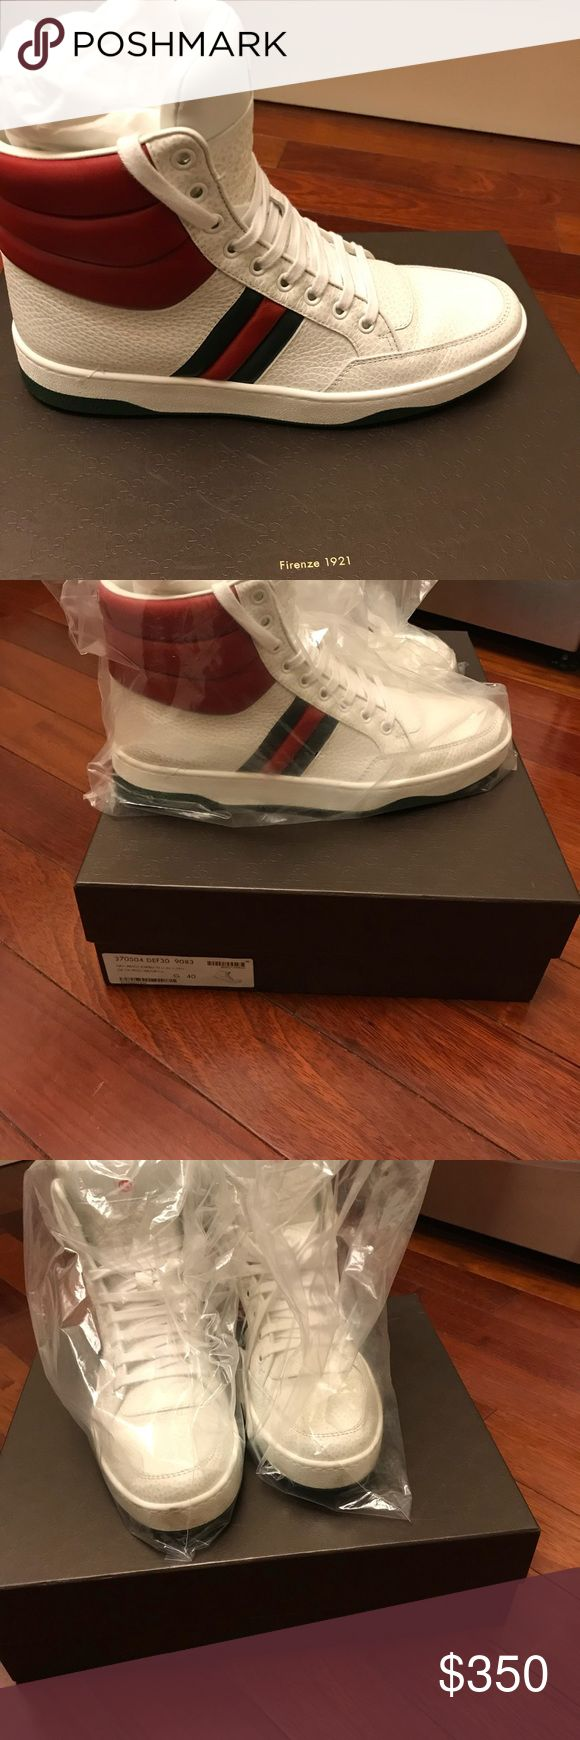 Authentic Gucci High top Sneakers Gucci high top sneakers. Almost like new!!! Barely worn sneakers. Excellent condition. Dust bag and extra shoe strings included. Gucci Shoes Sneakers